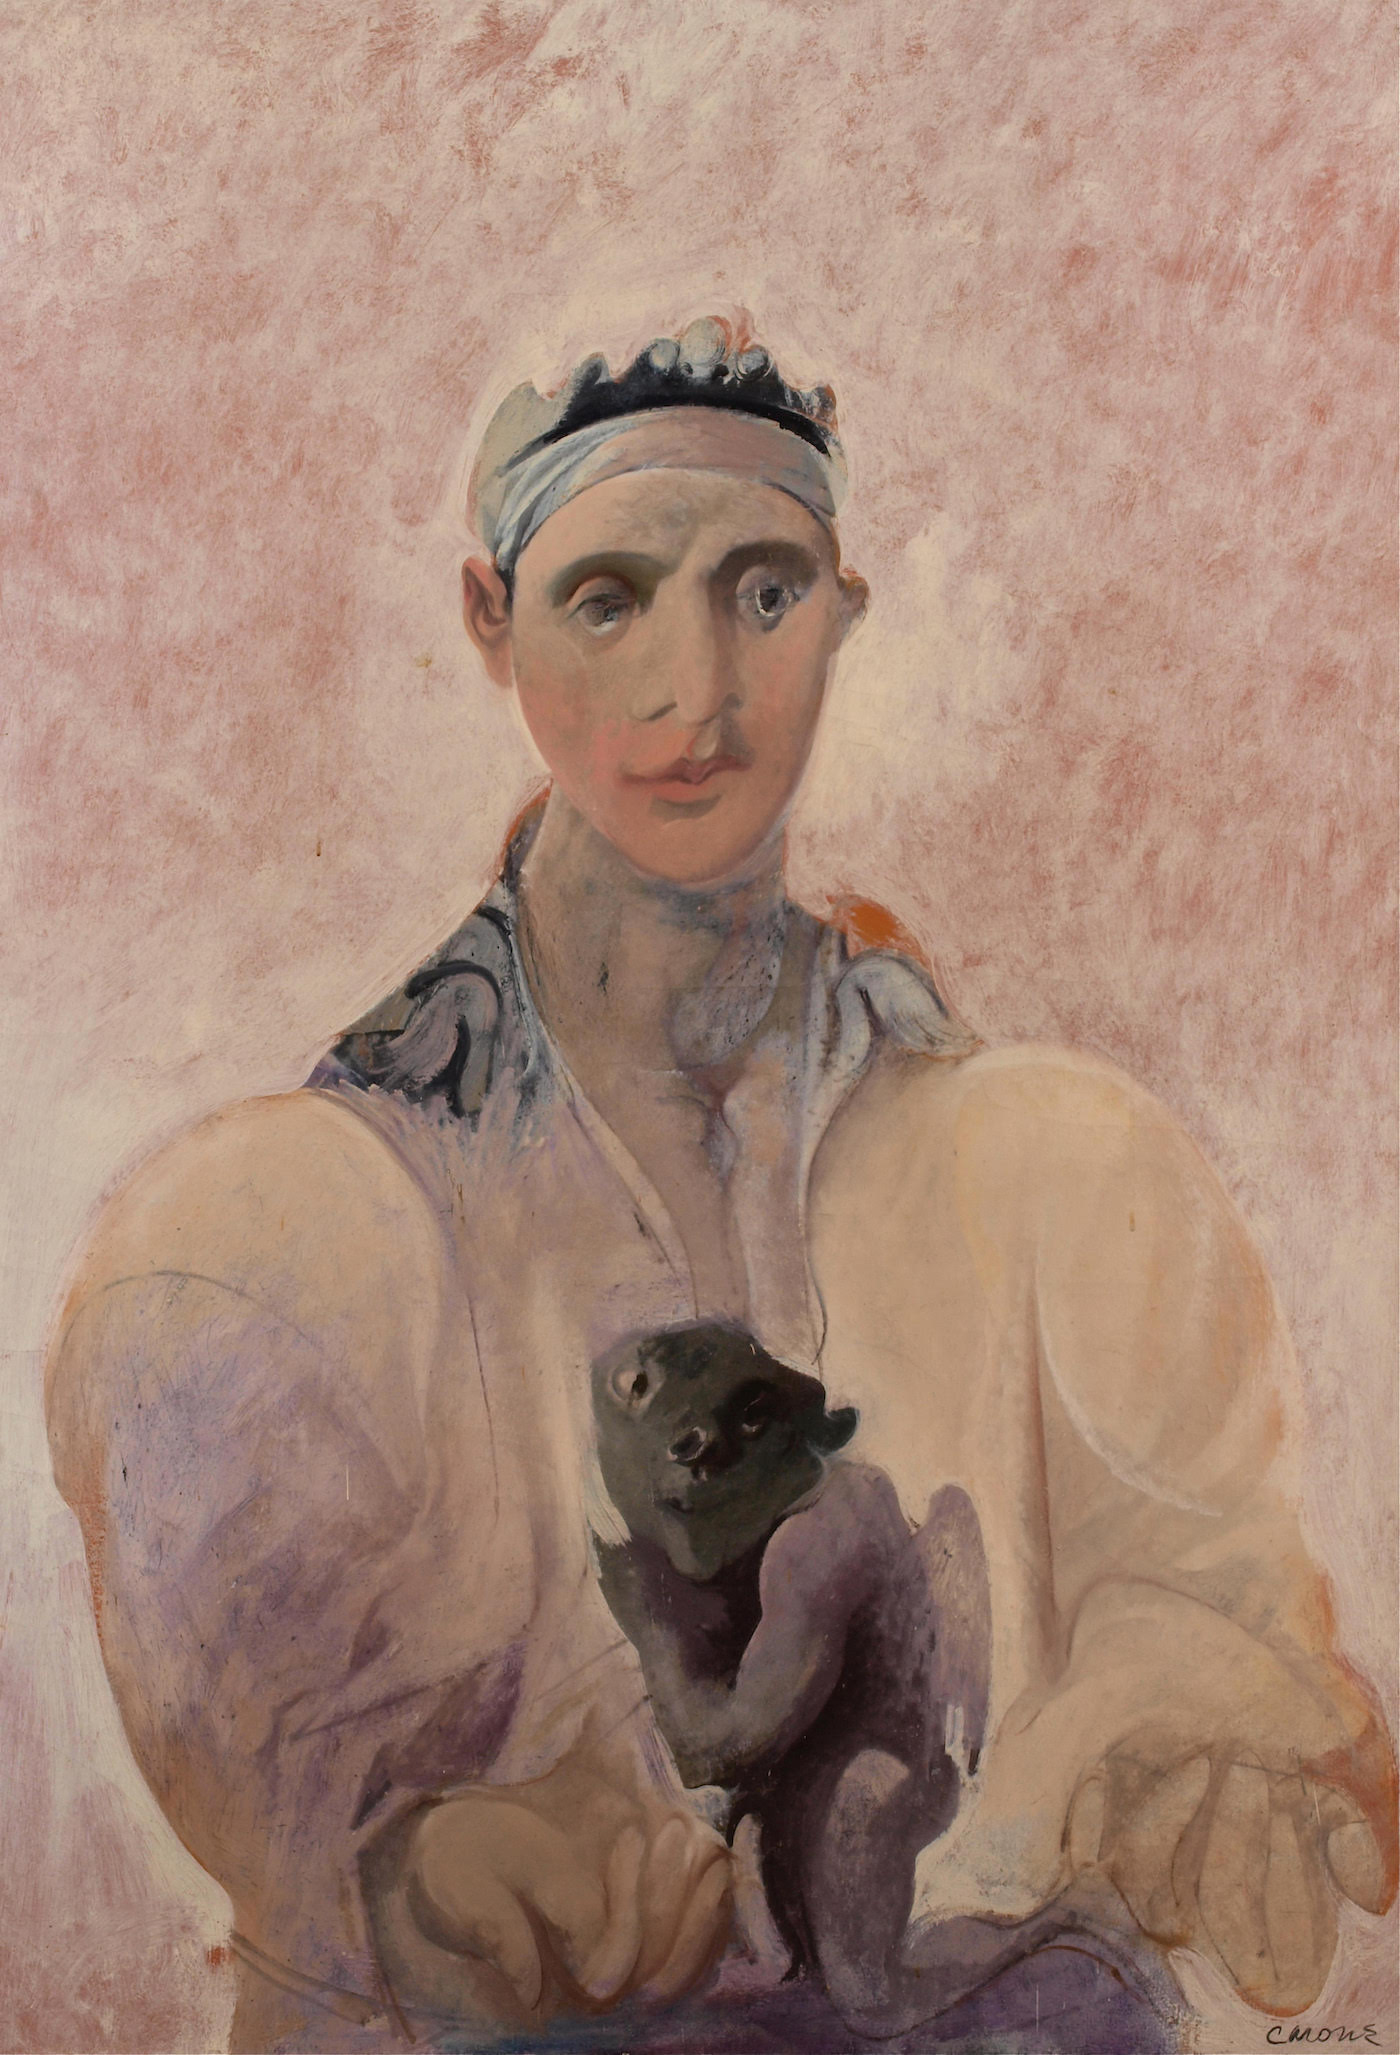 Nicolas Carone, The Prince, 1970, oil on linen, 71 1/2 x 50 inches (courtesy of Loretta Howard Gallery and the Estate of Nicolas Carone)